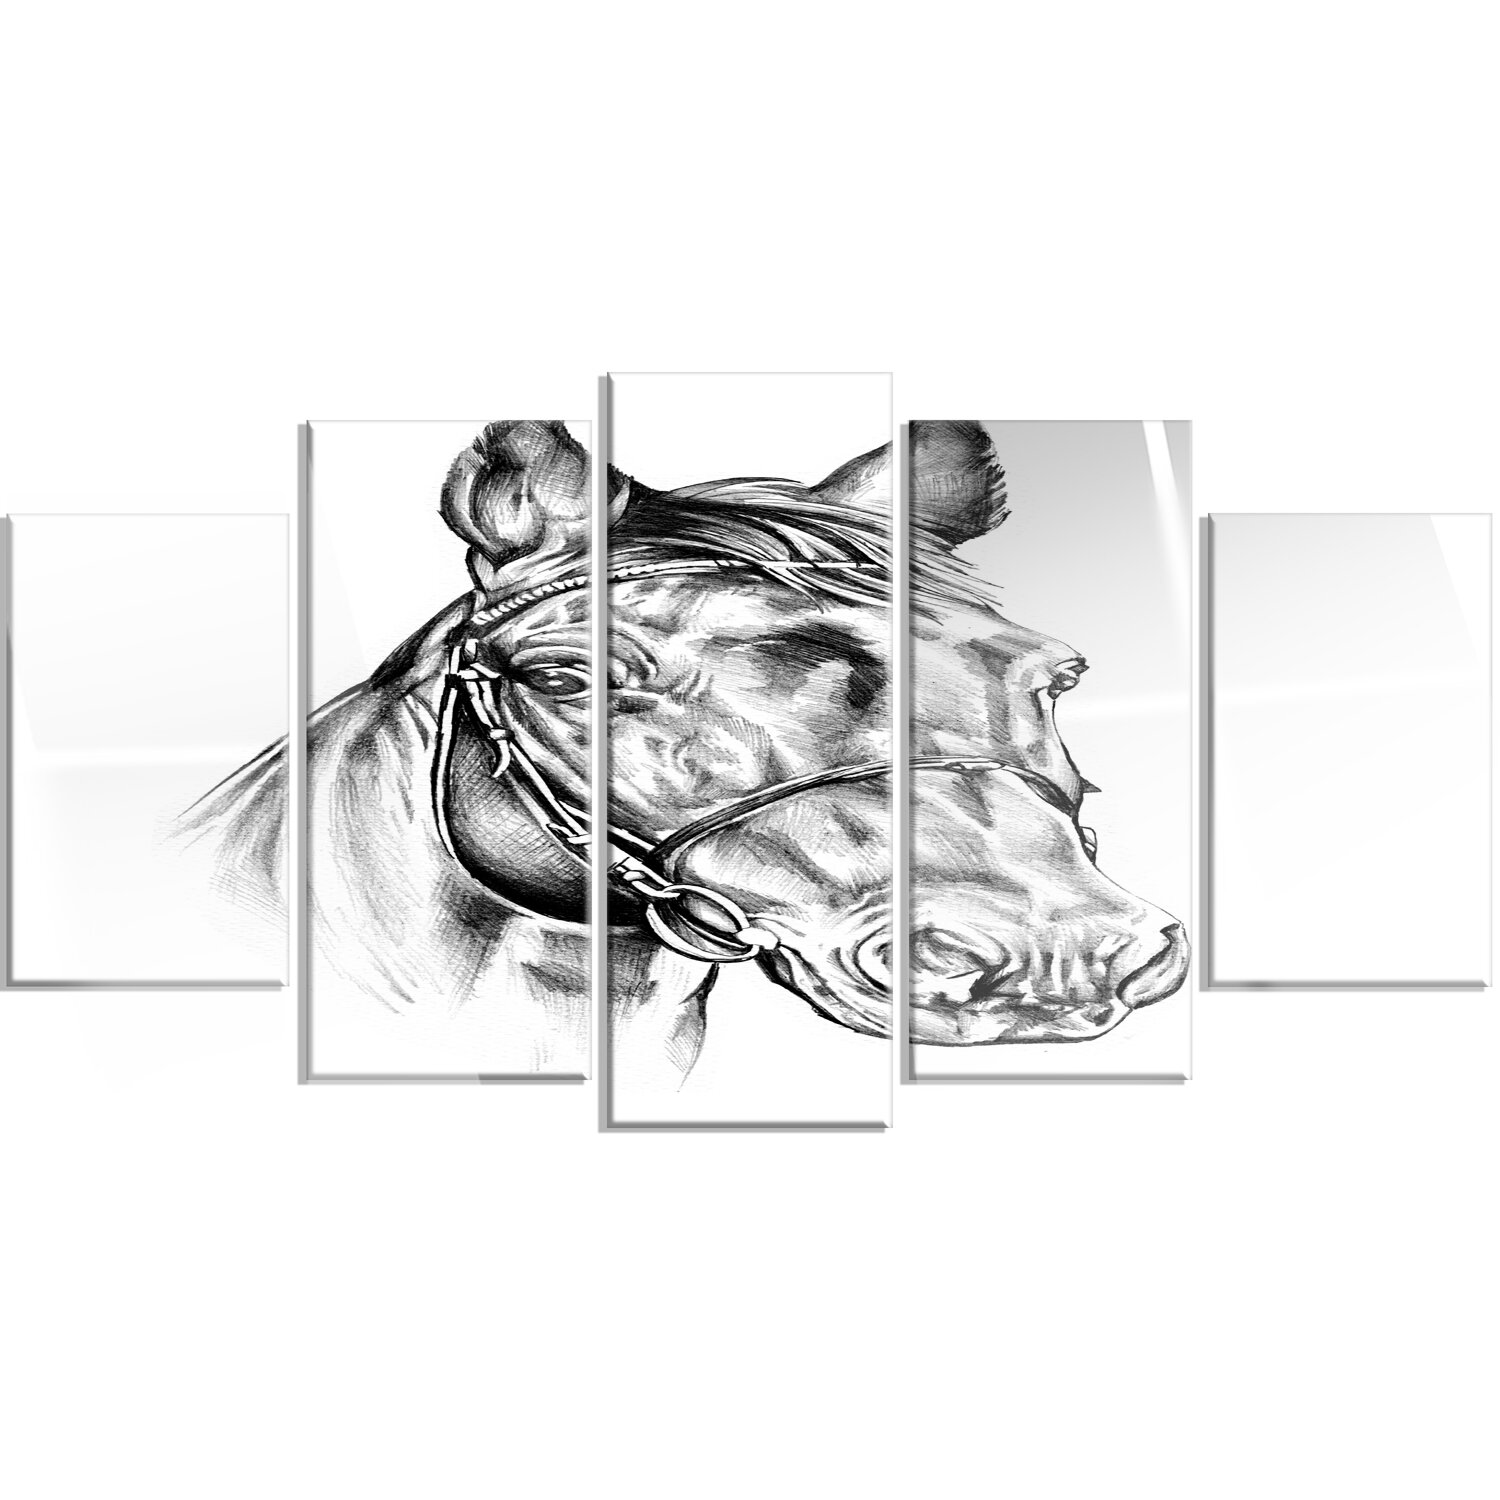 Freehand horse head pencil drawing 5 piece graphic art on metal set